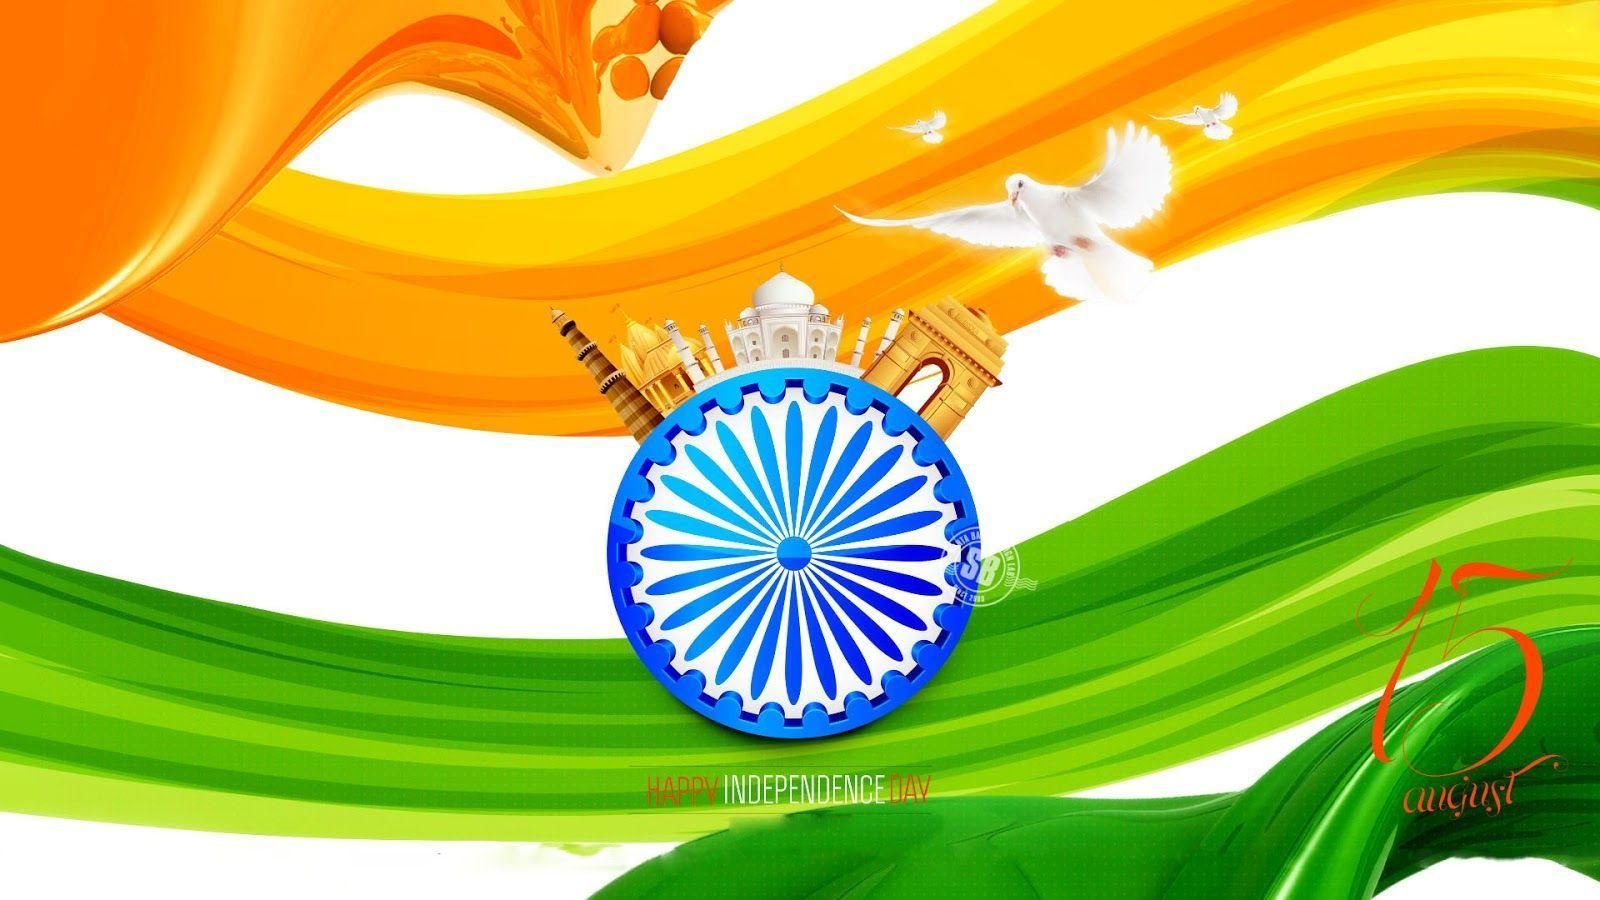 Independence Day Mobile Wallpapers: Indian Flag Mobile Wallpapers 2017